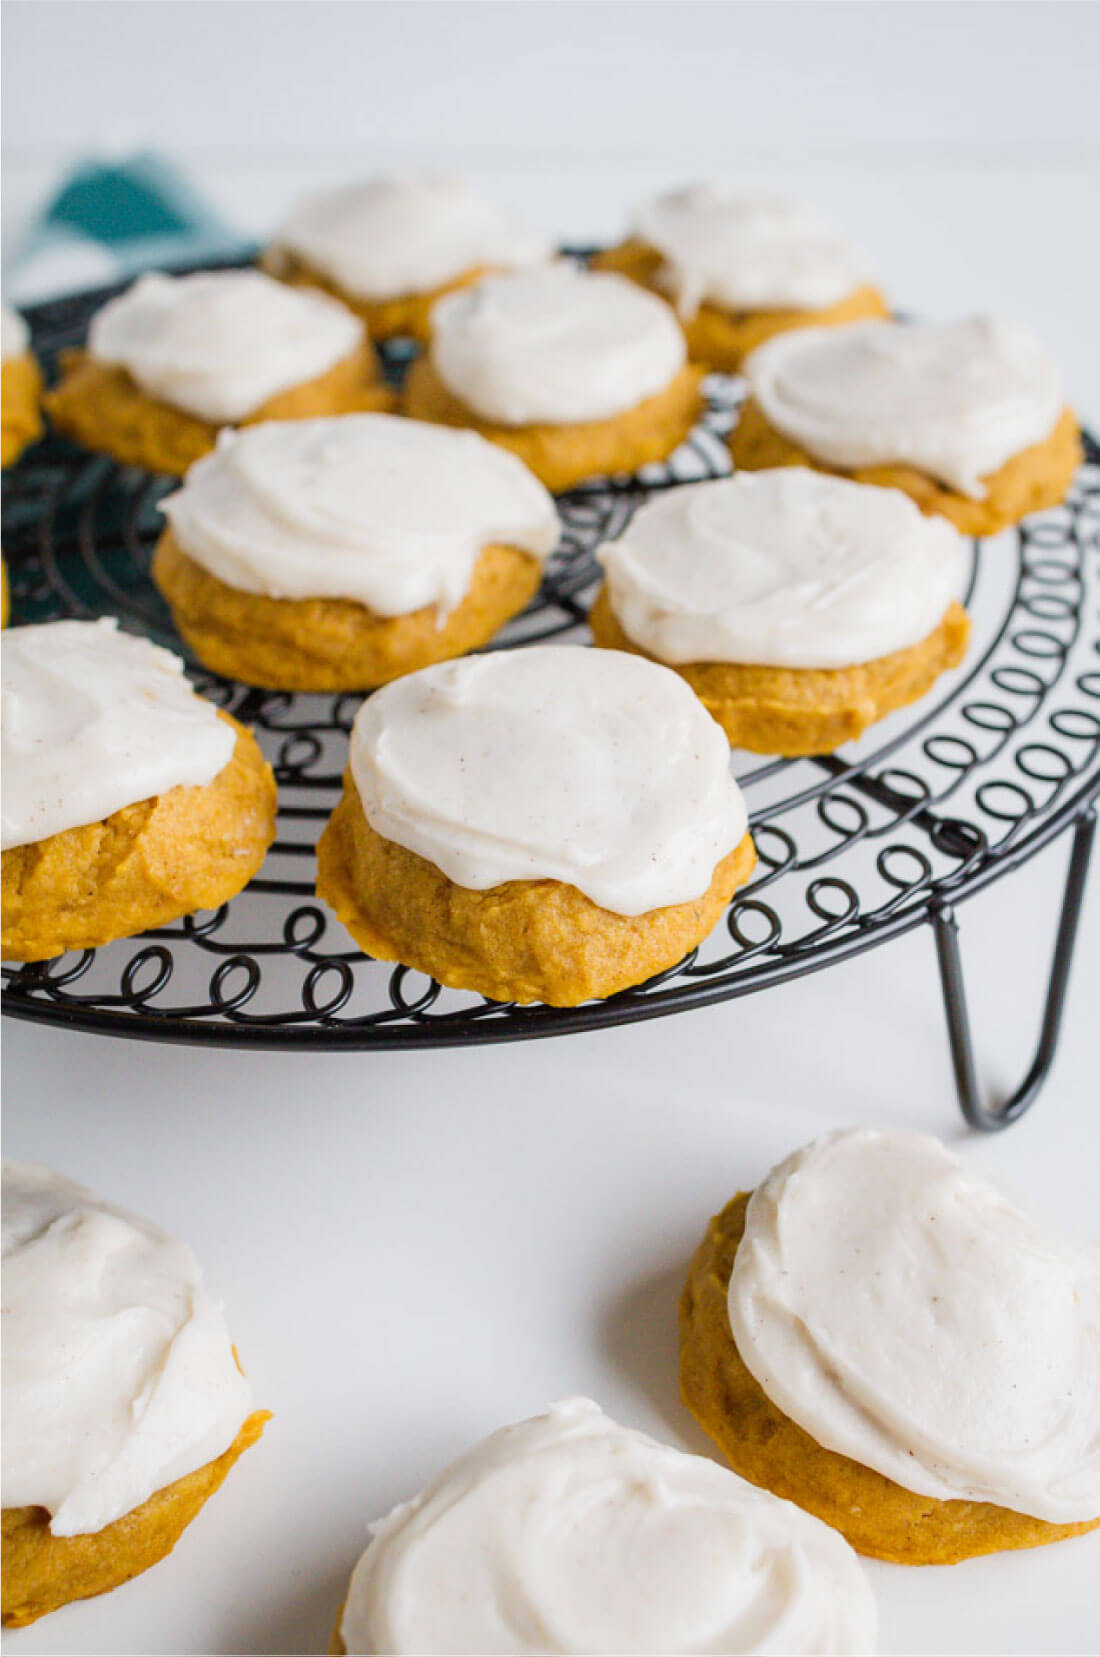 Frosted Pumpkin Cookies - make this amazing pumpkin recipe for the fall!